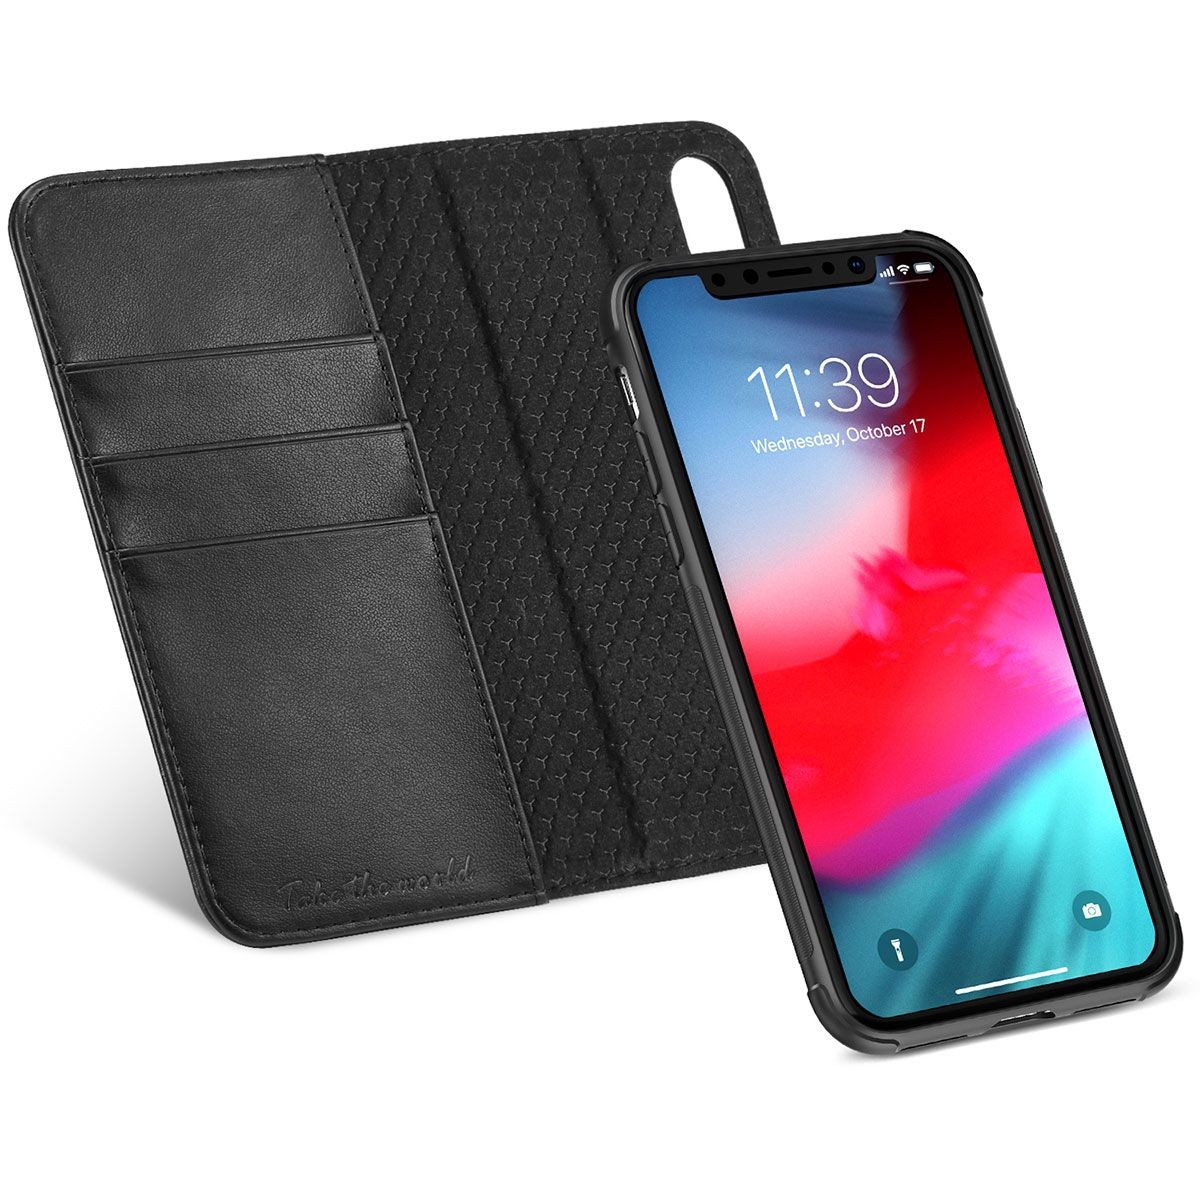 new arrival de58c ad4e2 TUCCH iPhone X Leather Wallet Case, iPhone X Detachable Case 2IN1, Folio /  Flip Cover with RFID Blocking, Kickstand, Credit Card Slots, Magnetic ...